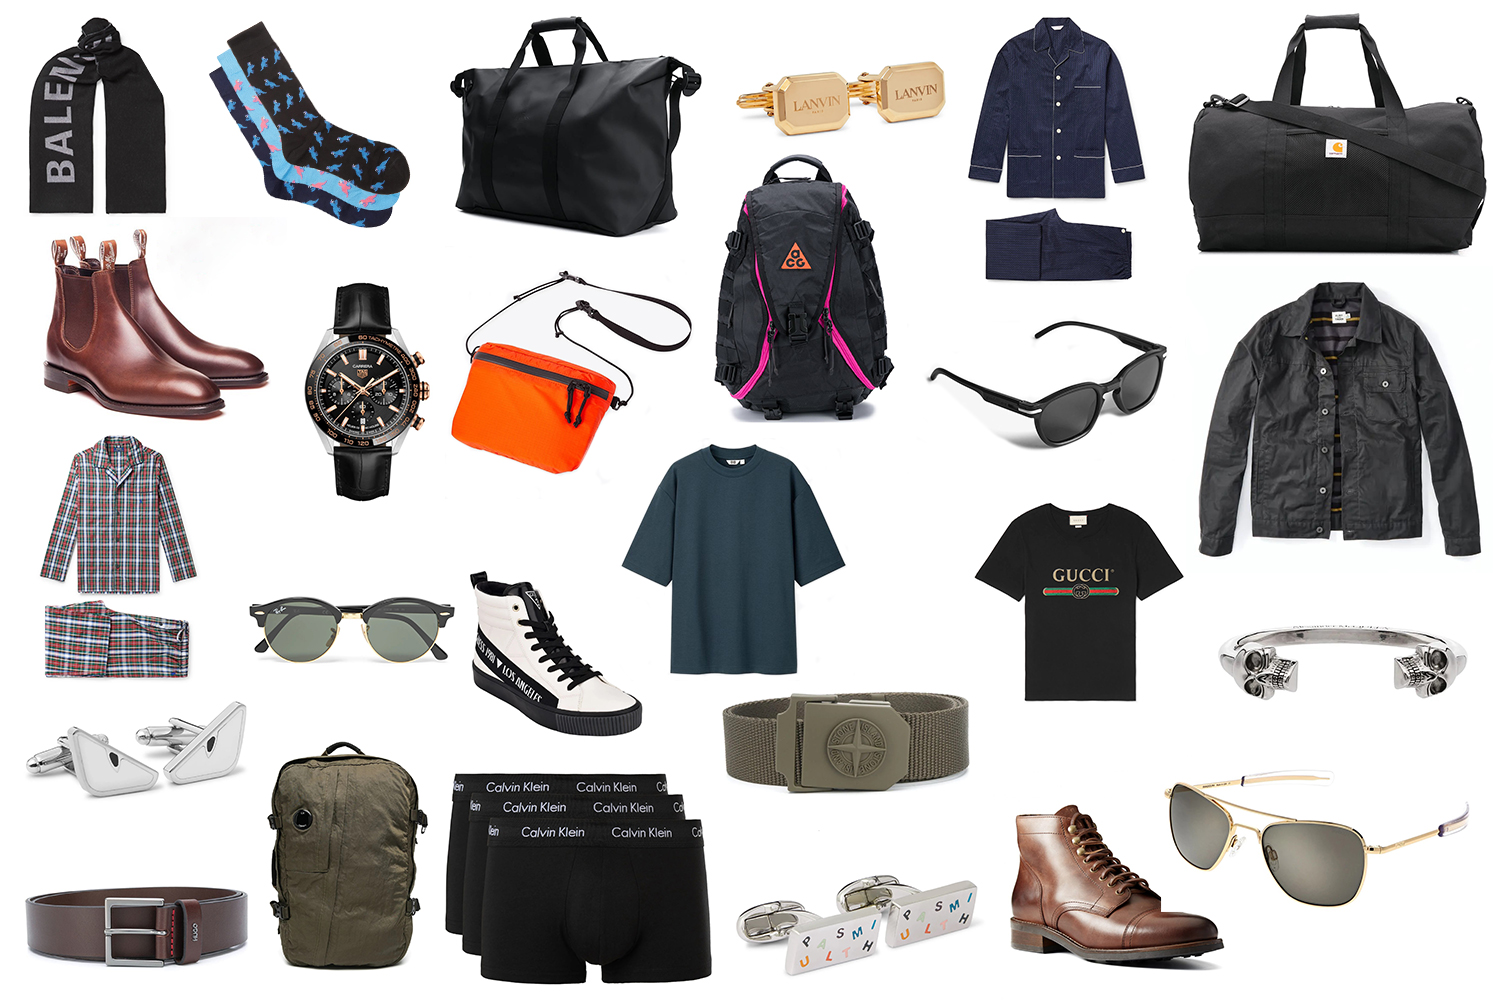 2020 Christmas Gift Guide - The Stylish Man | Man of Many